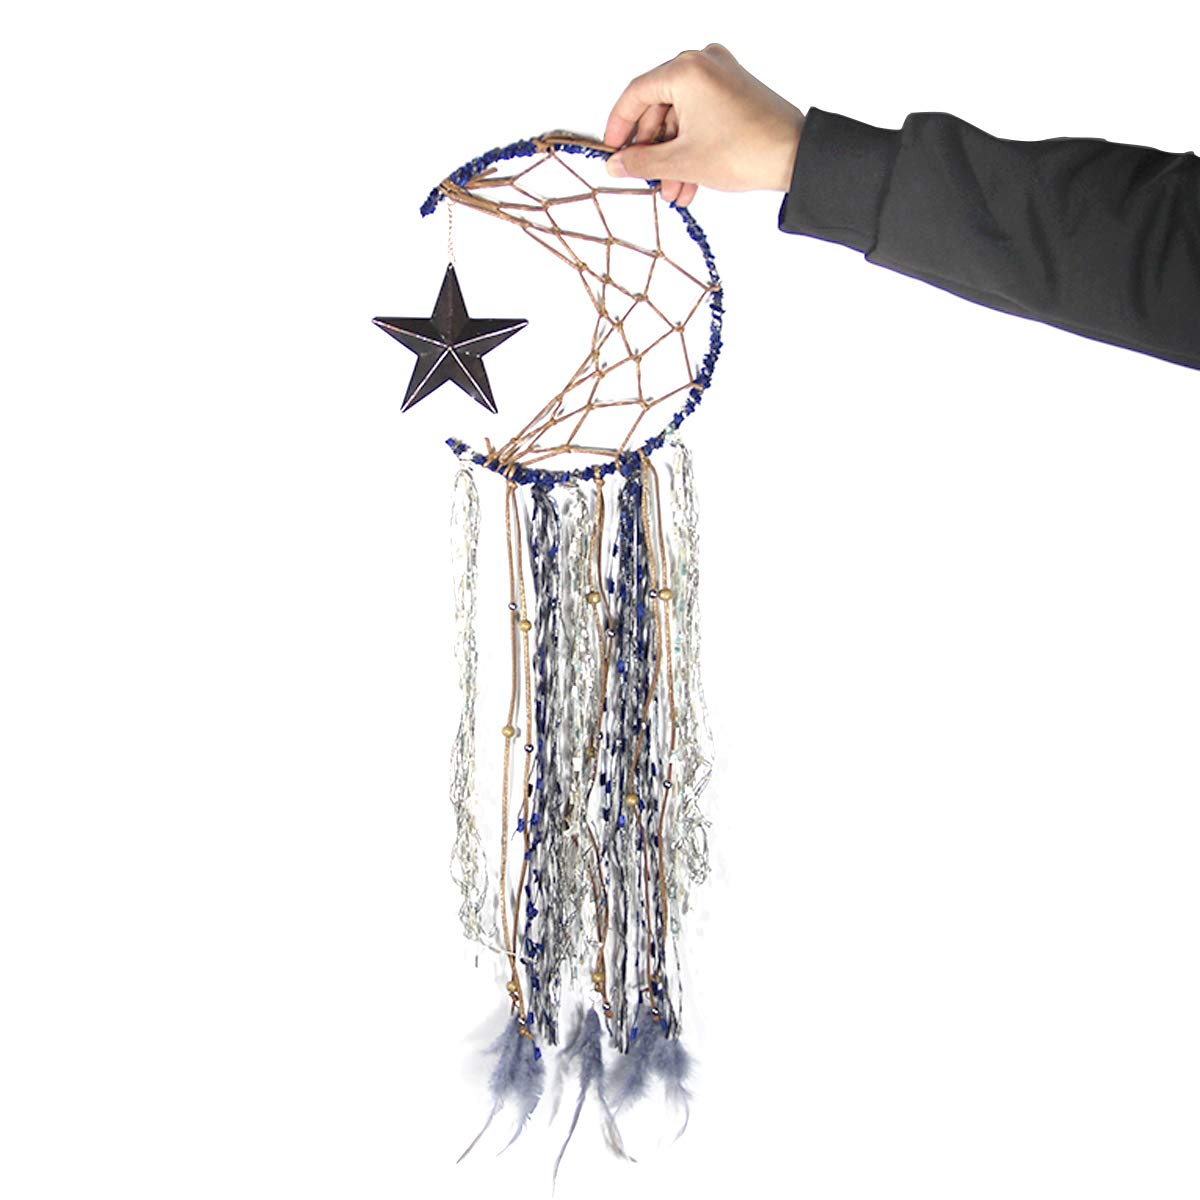 with Gift Box BetterJonny Blue Dream Catcher Handmade Half Circle Moon Design Dream Catcher Feather Hanging with Star Wall Art Hanging Home Decorations Dorm Room Ornament Craft Gift Festival Gift